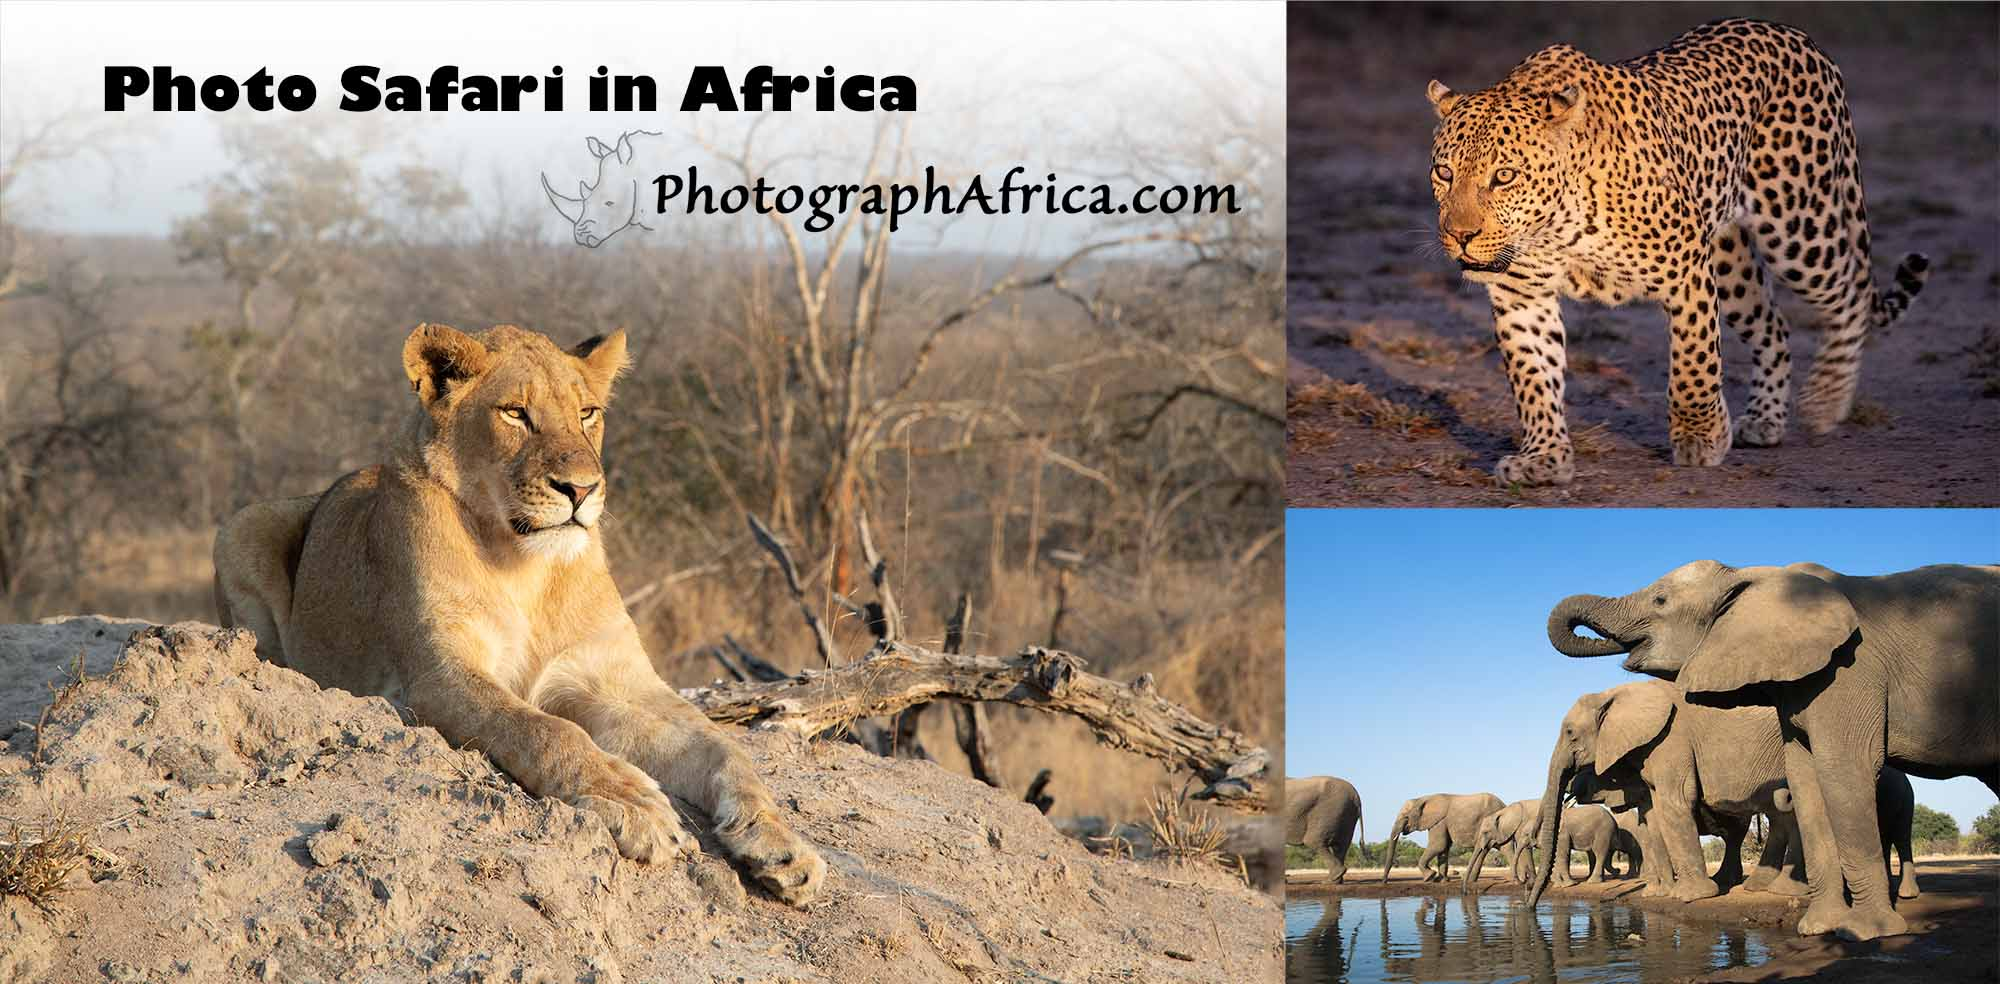 Photographic Safari in South Africa with big cats